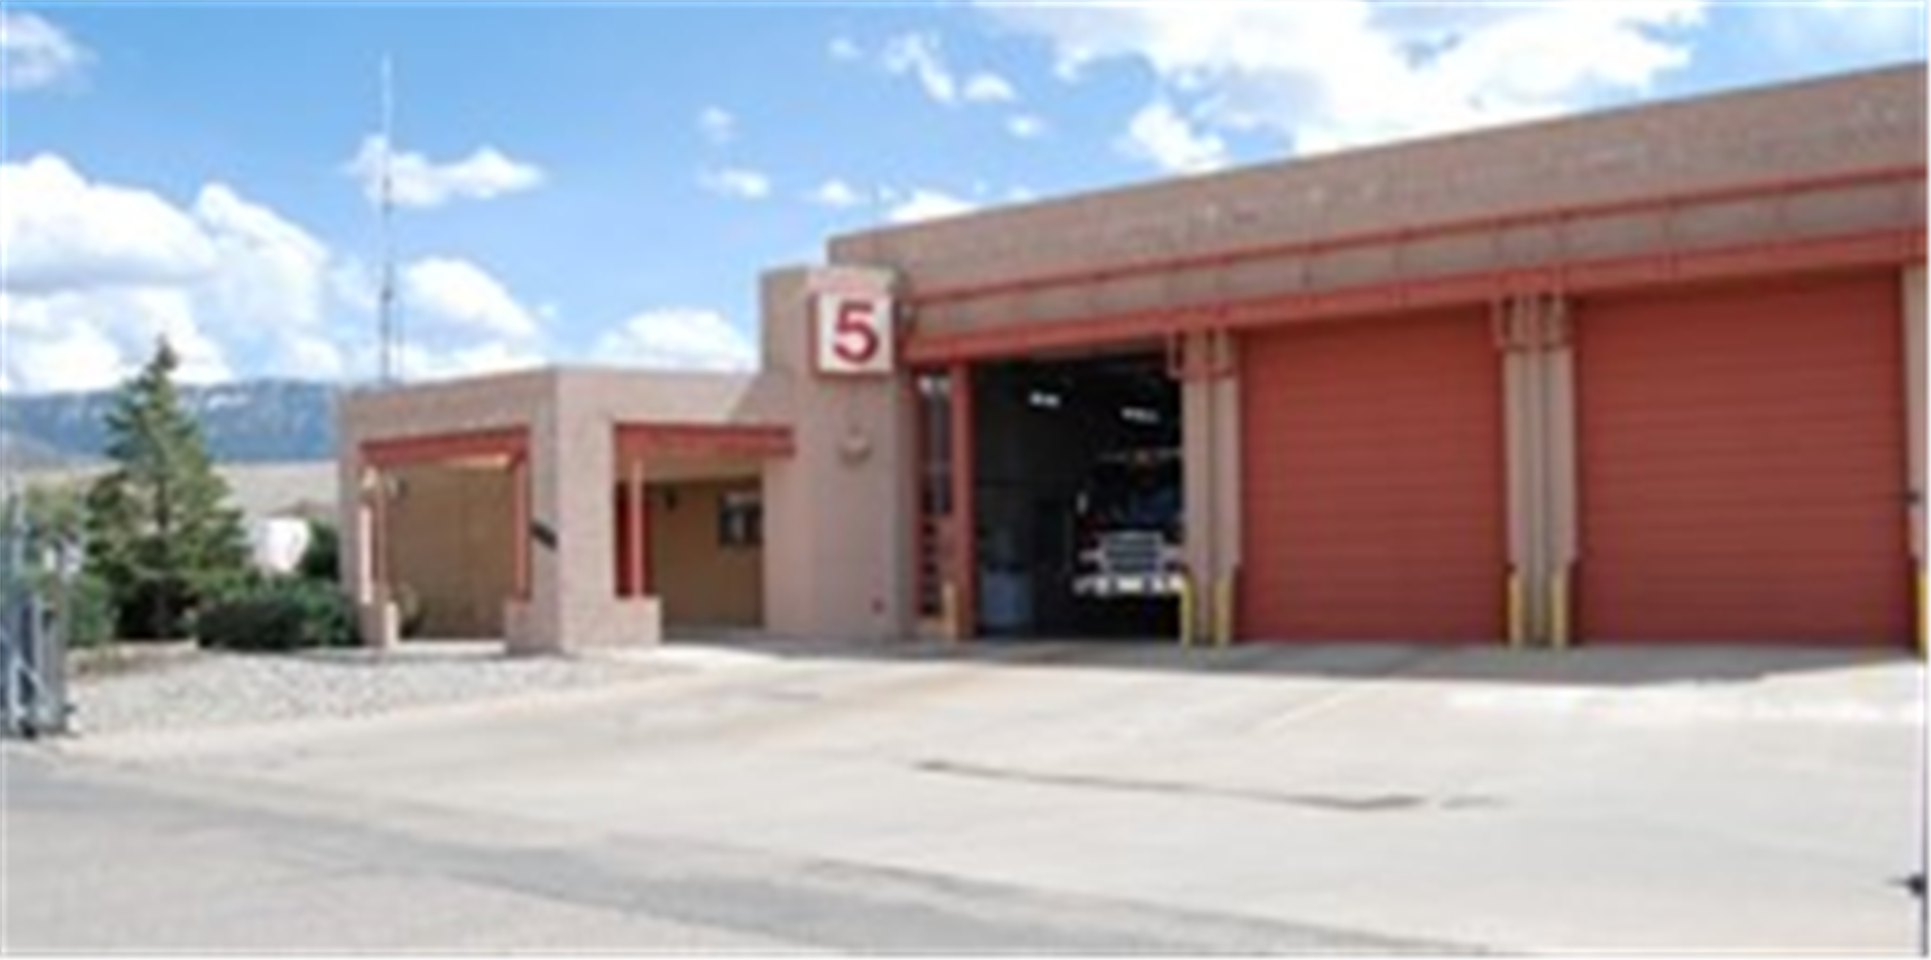 A picture of the front of a fire station